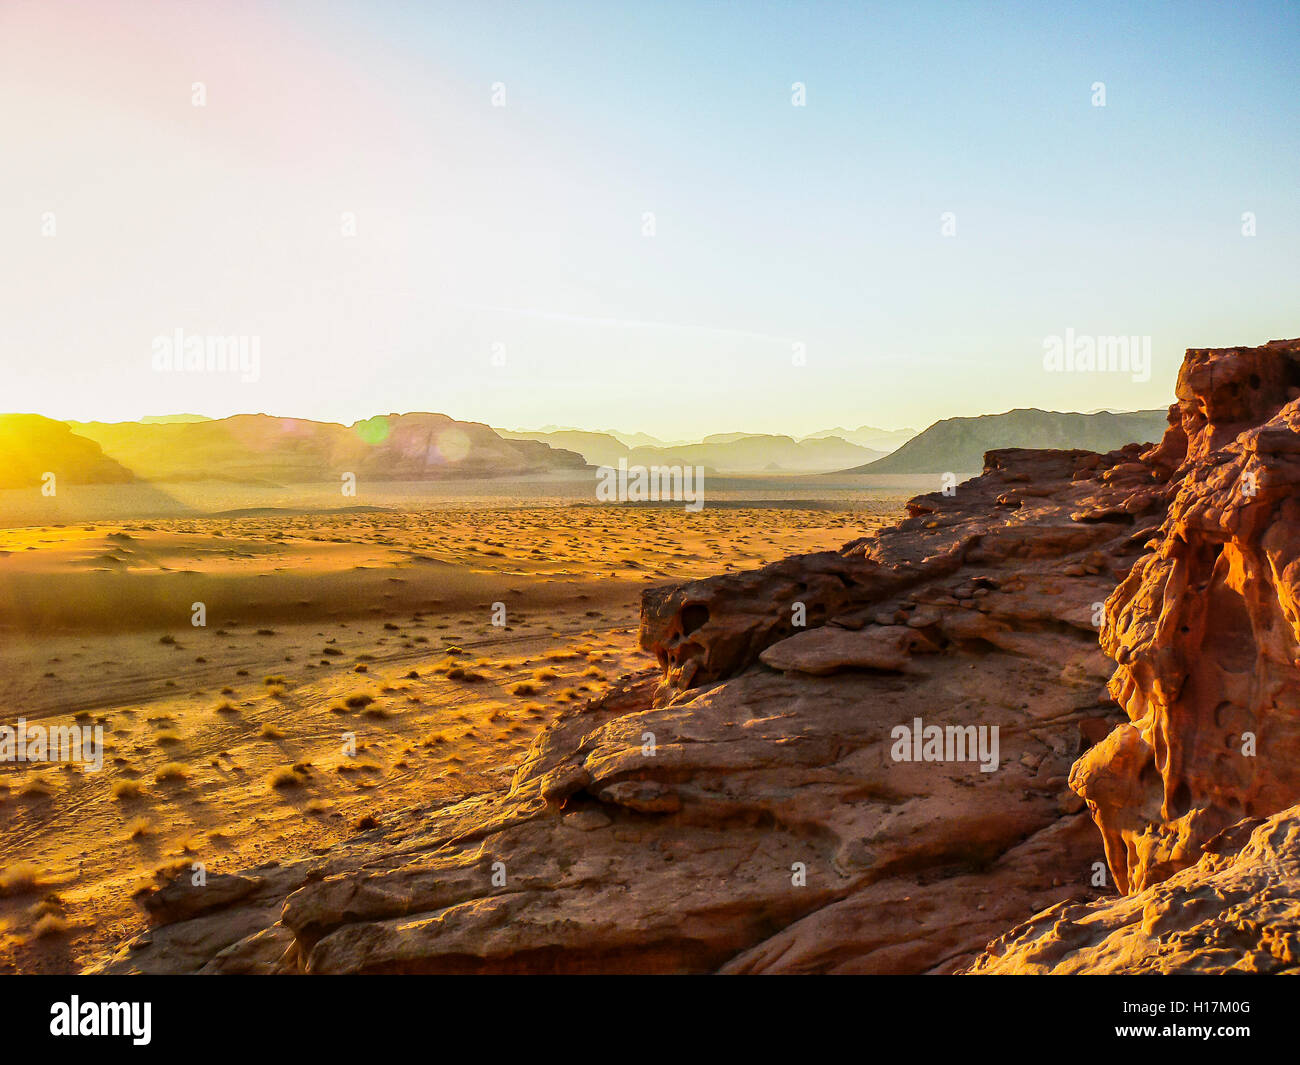 Sunset in the Desert of Wadi Rum, Jordan - Stock Image